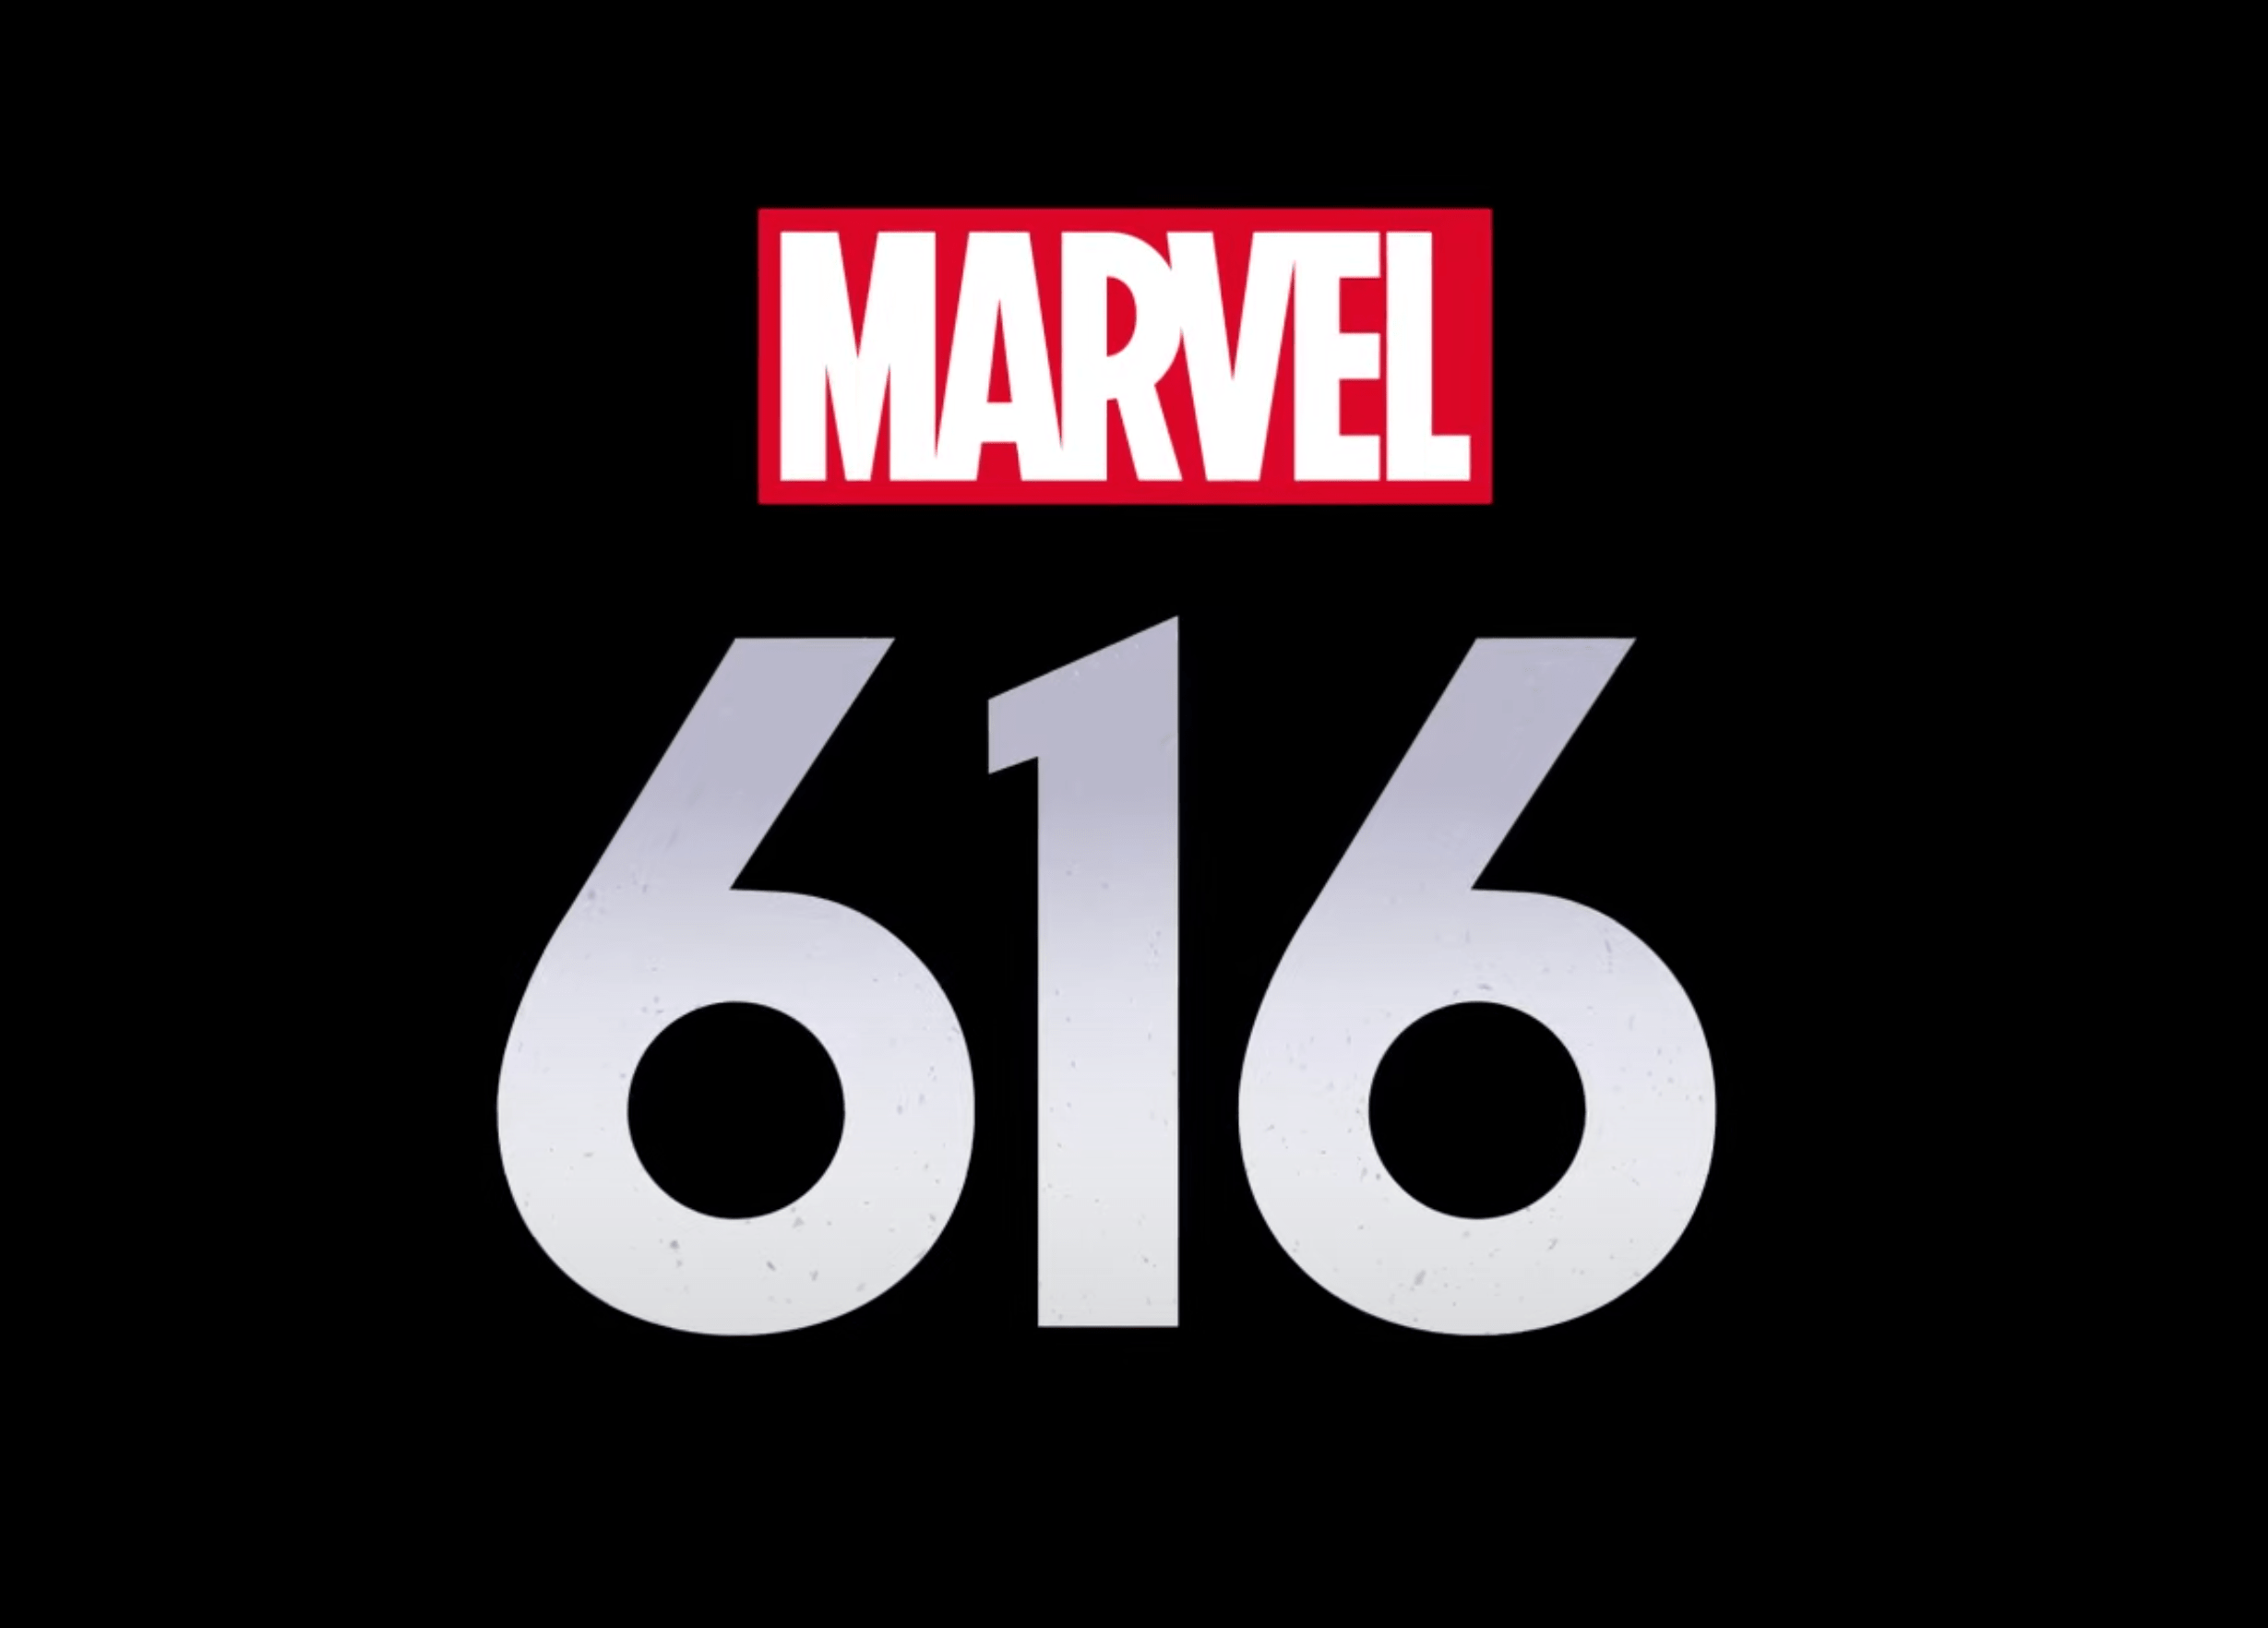 Disney+ features sneak peek of docuseries 'Marvel's 616'